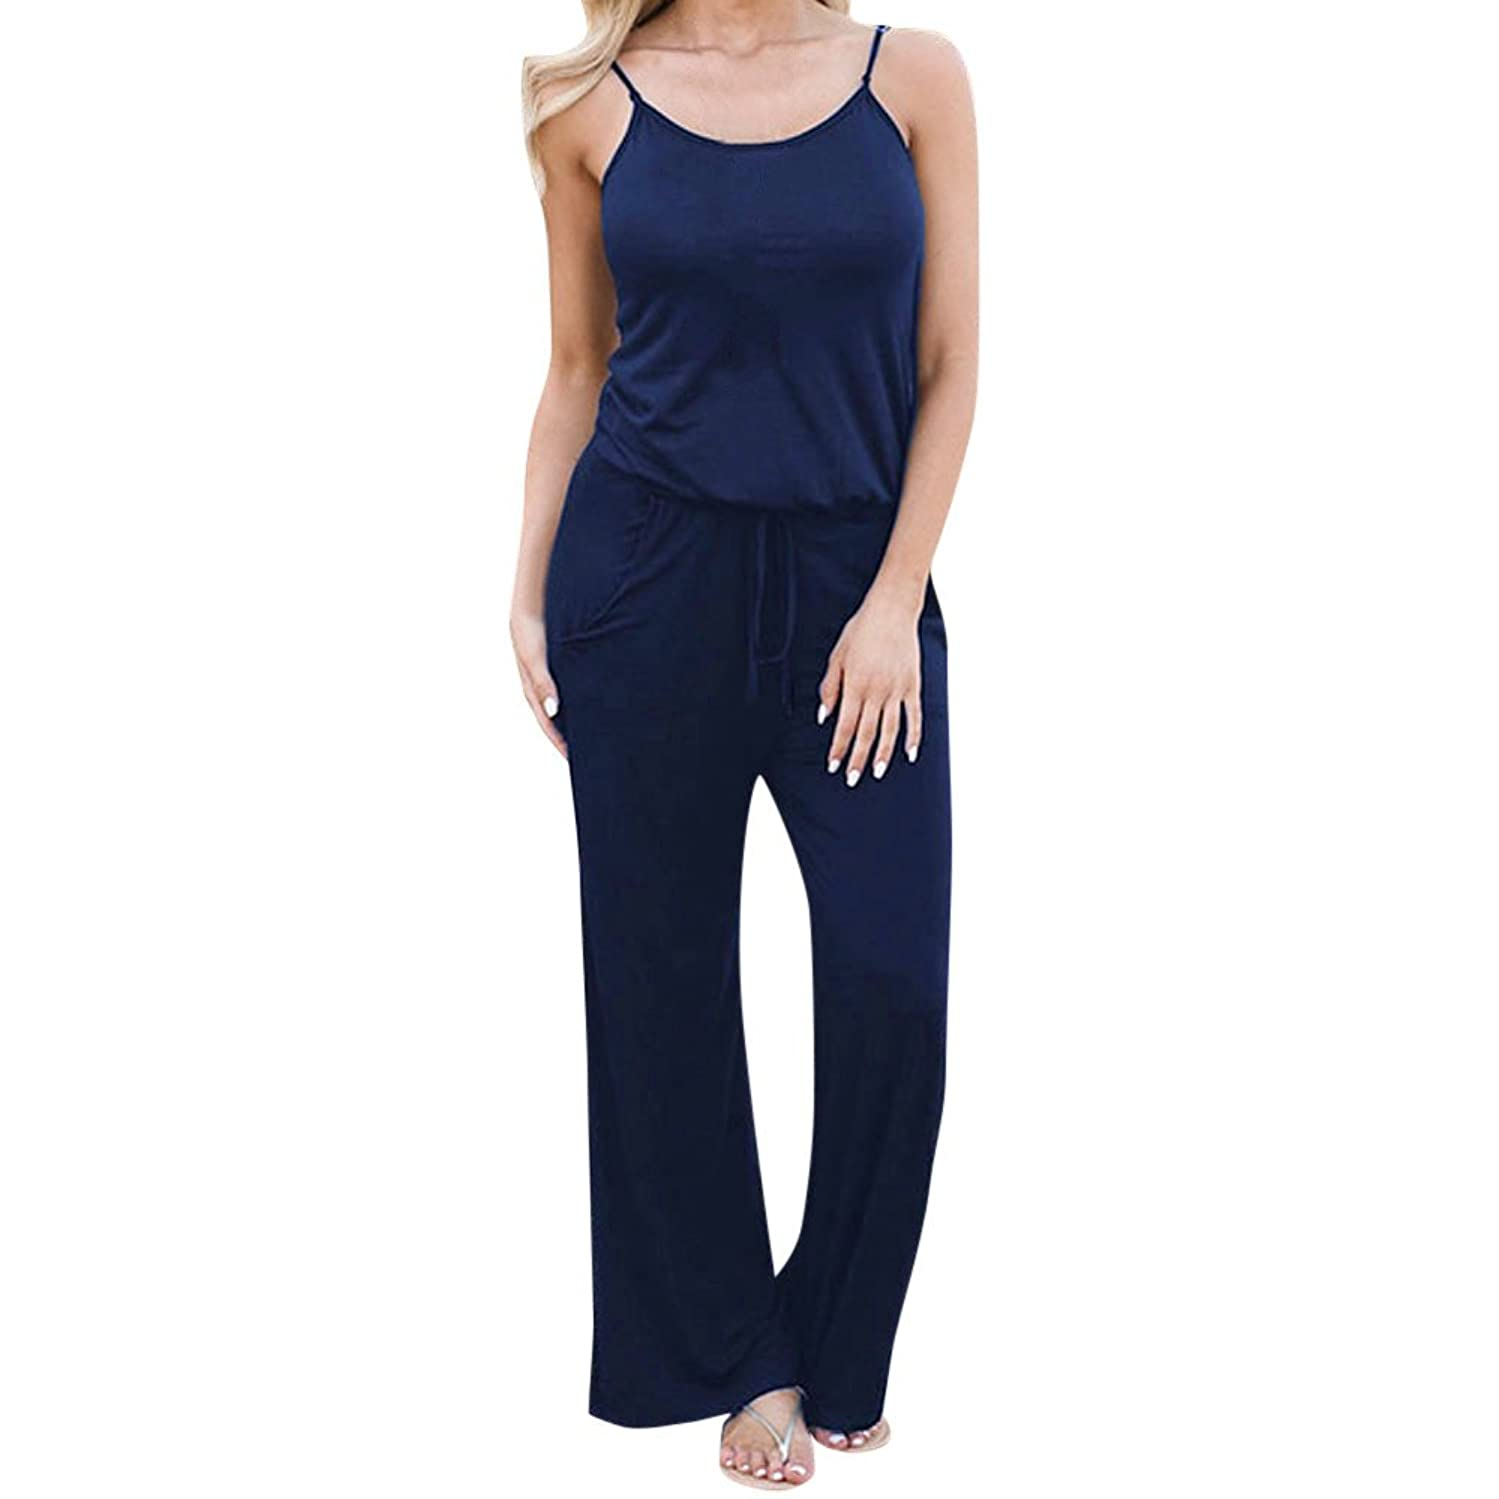 ???Watere??? Women's Sexy Deep V Neck Short Sleeve Wrap Drawstring Waist Jumpsuit Romper with Pockets